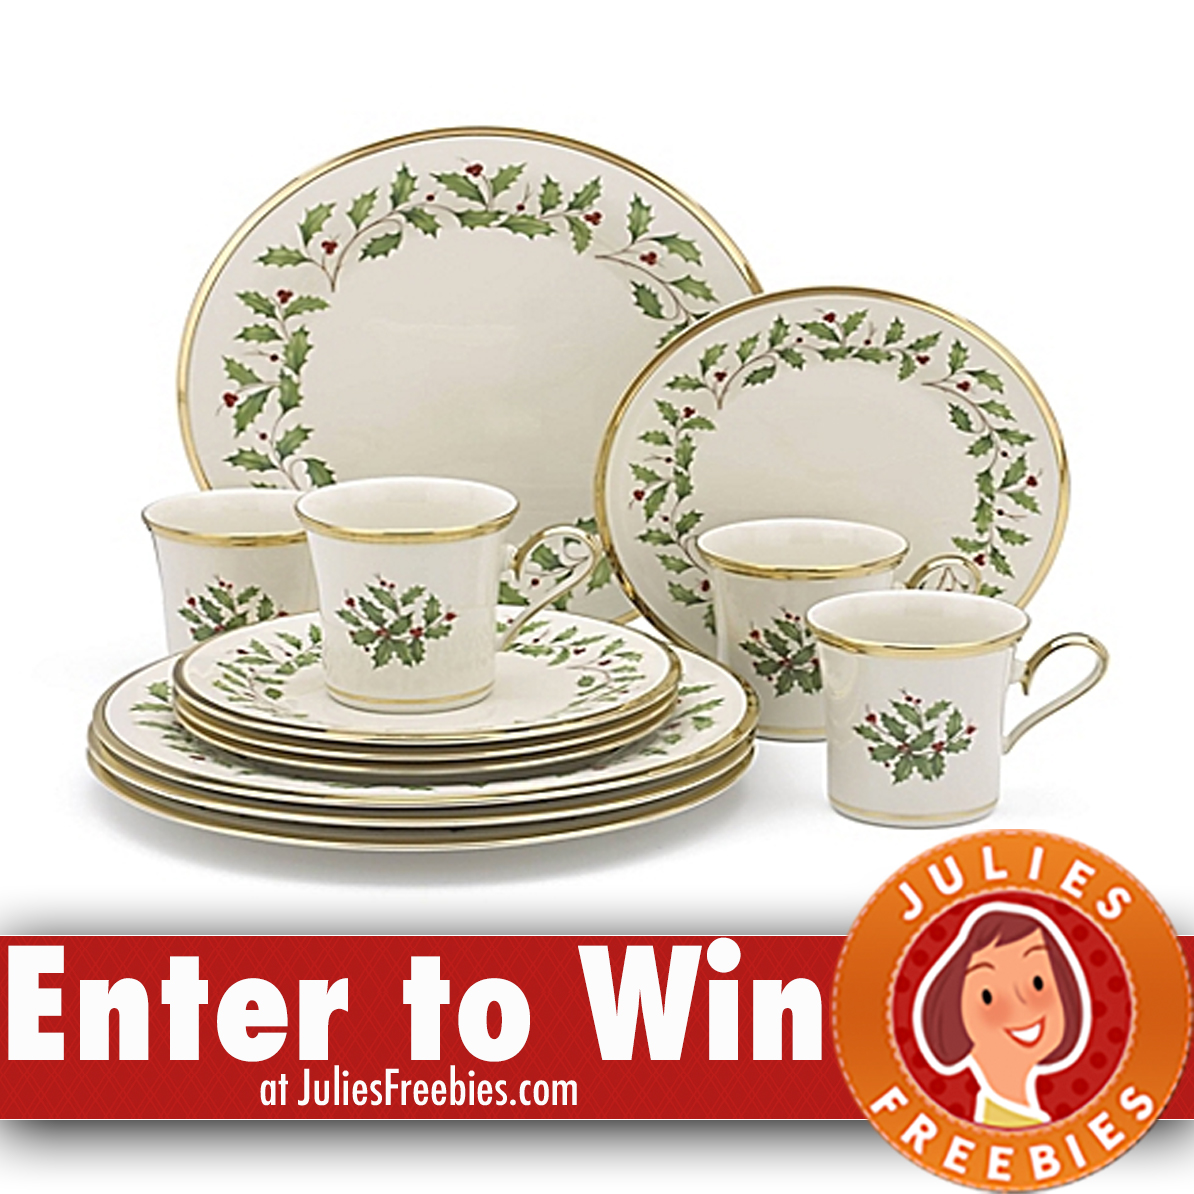 Win Two (2) Lenox® Holiday™ 12 u2013 Piece Dinnerware Sets. Includes eight (8) place settings with 10.5u2033 dinner plate 8u2033 salad plate and 6u2033 bowl.  sc 1 st  Julieu0027s Freebies & Win 2 Lenox Holiday Dinnerware Sets - Julieu0027s Freebies